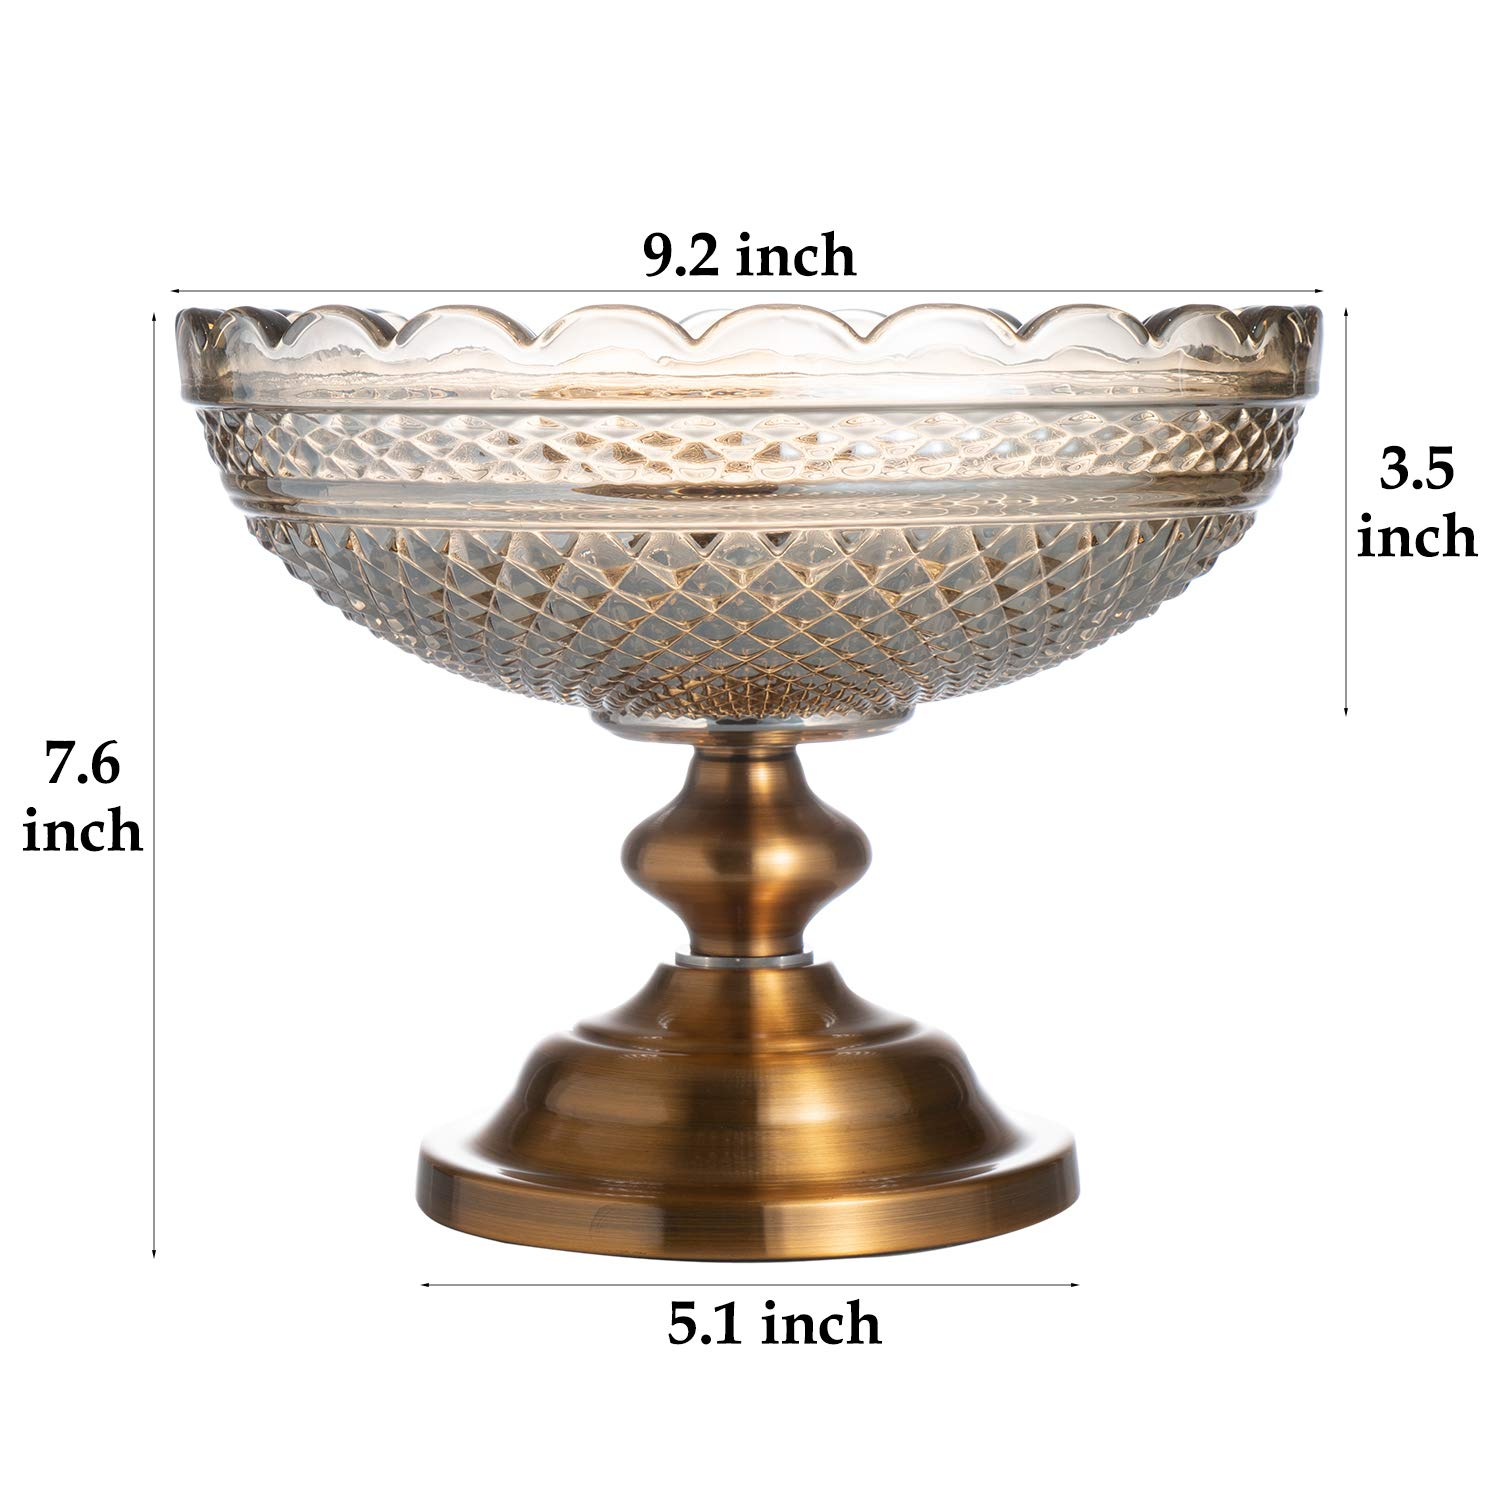 Glass Pedestal Bowl Centerpiece Bowl Decorative Fruit Display Stand Vase Candy Dish for Home Party Wedding Dining Room Decoration Round Trifle Bowl Footed Compote Bowl Serving Bowl